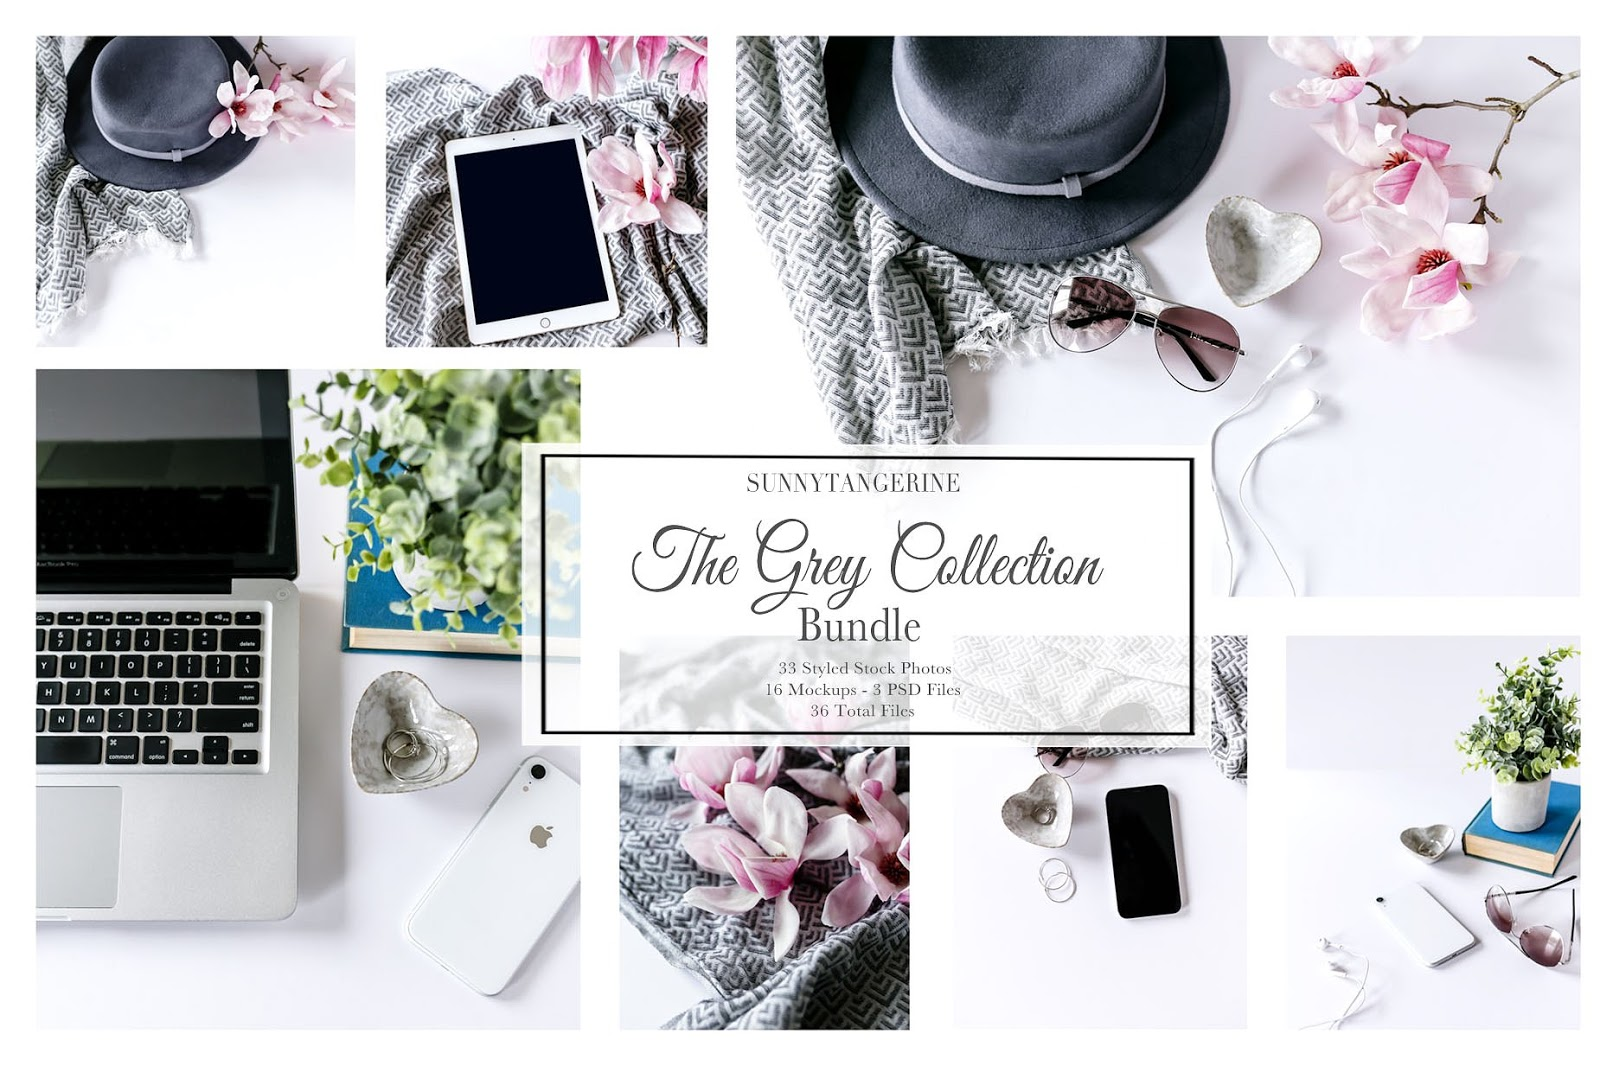 The Grey Collection Photo Mockups Bundle